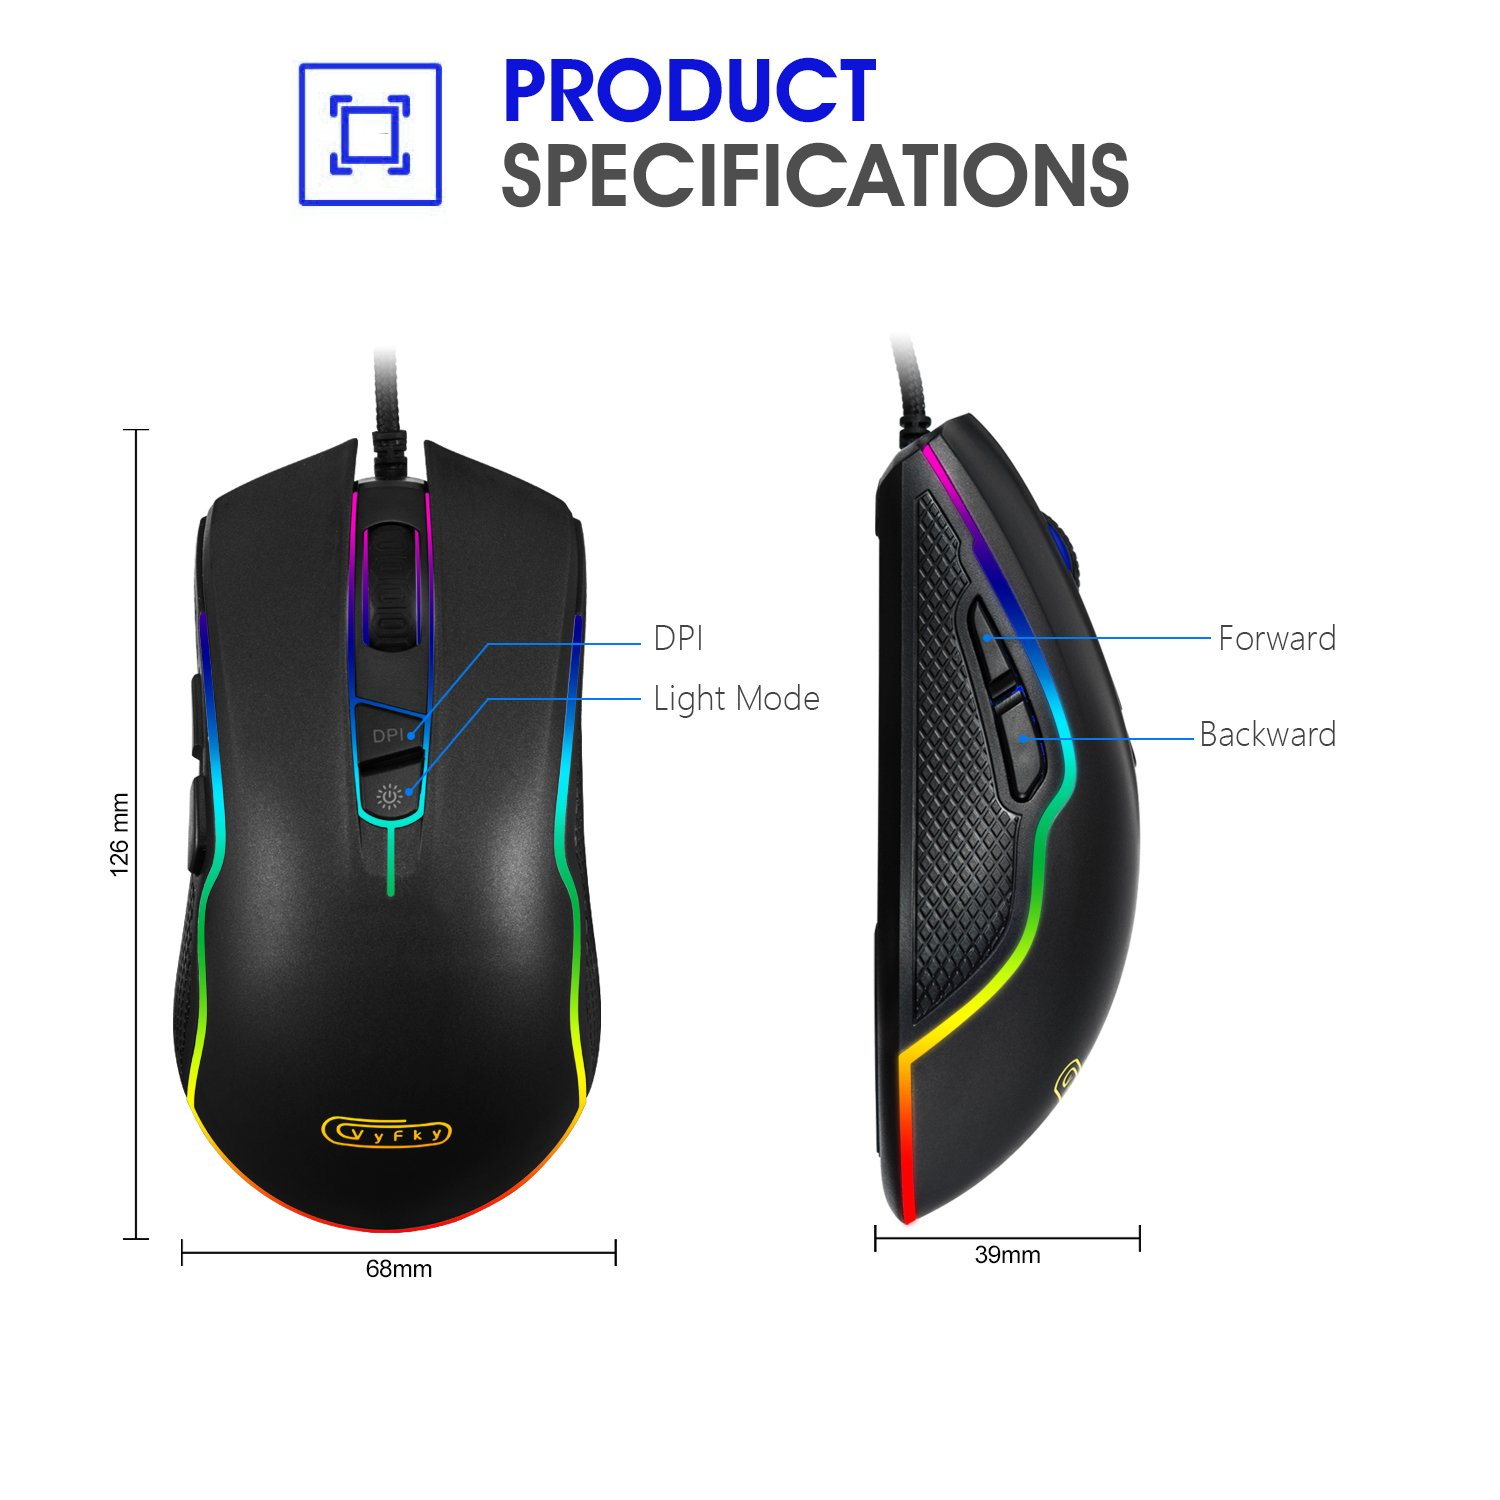 Mua sản phẩm VyFky Wired Gaming Mice, 4000 DPI Programmable High